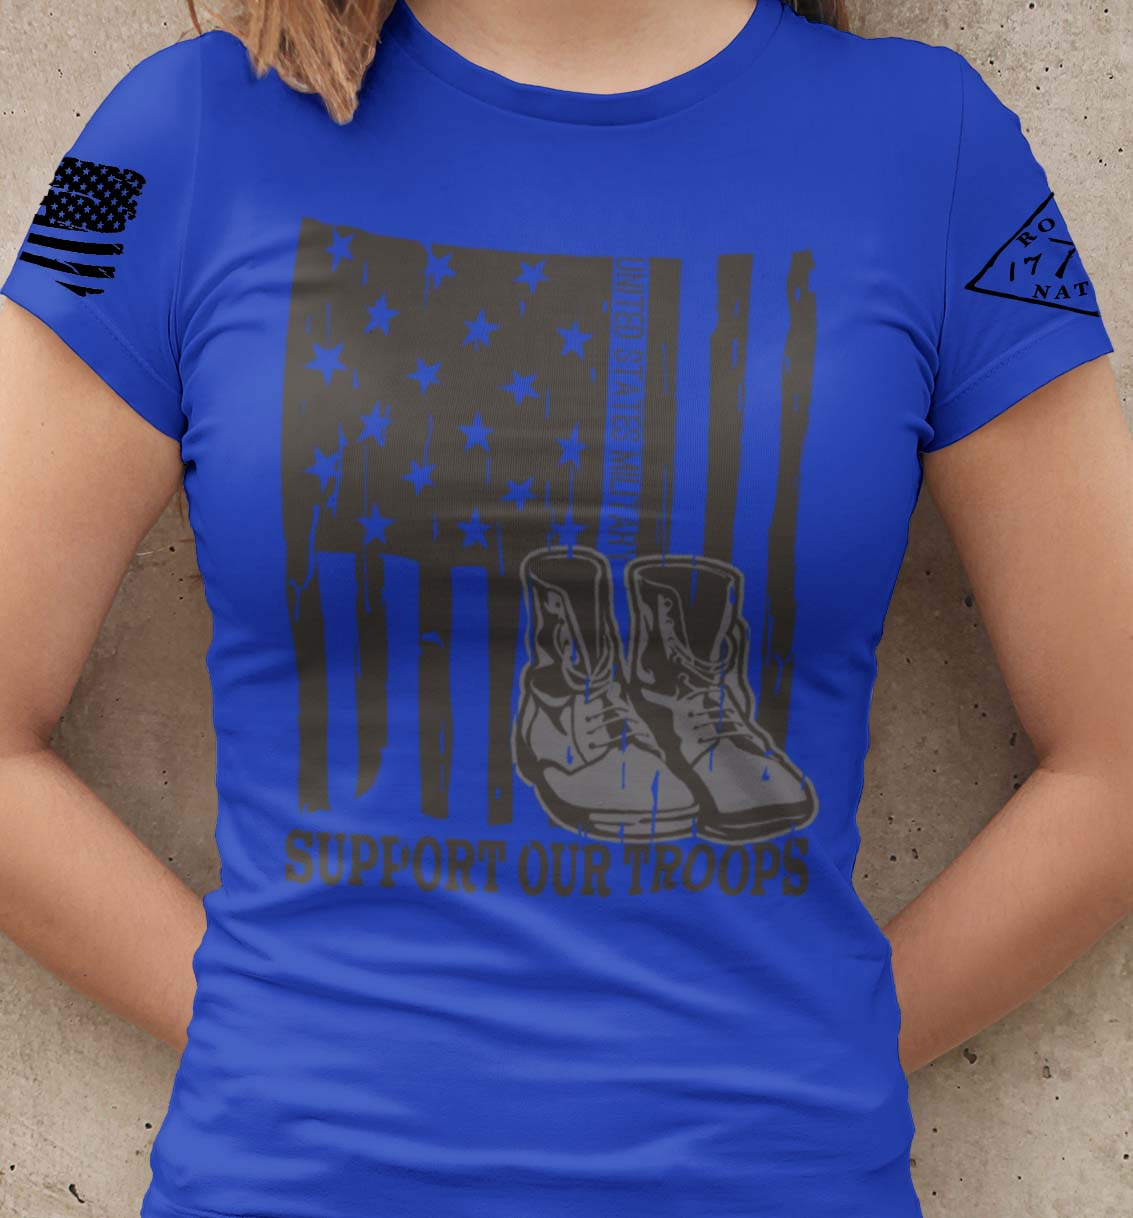 Support our US Troops Flag on a womens Royal Blue T-shirt